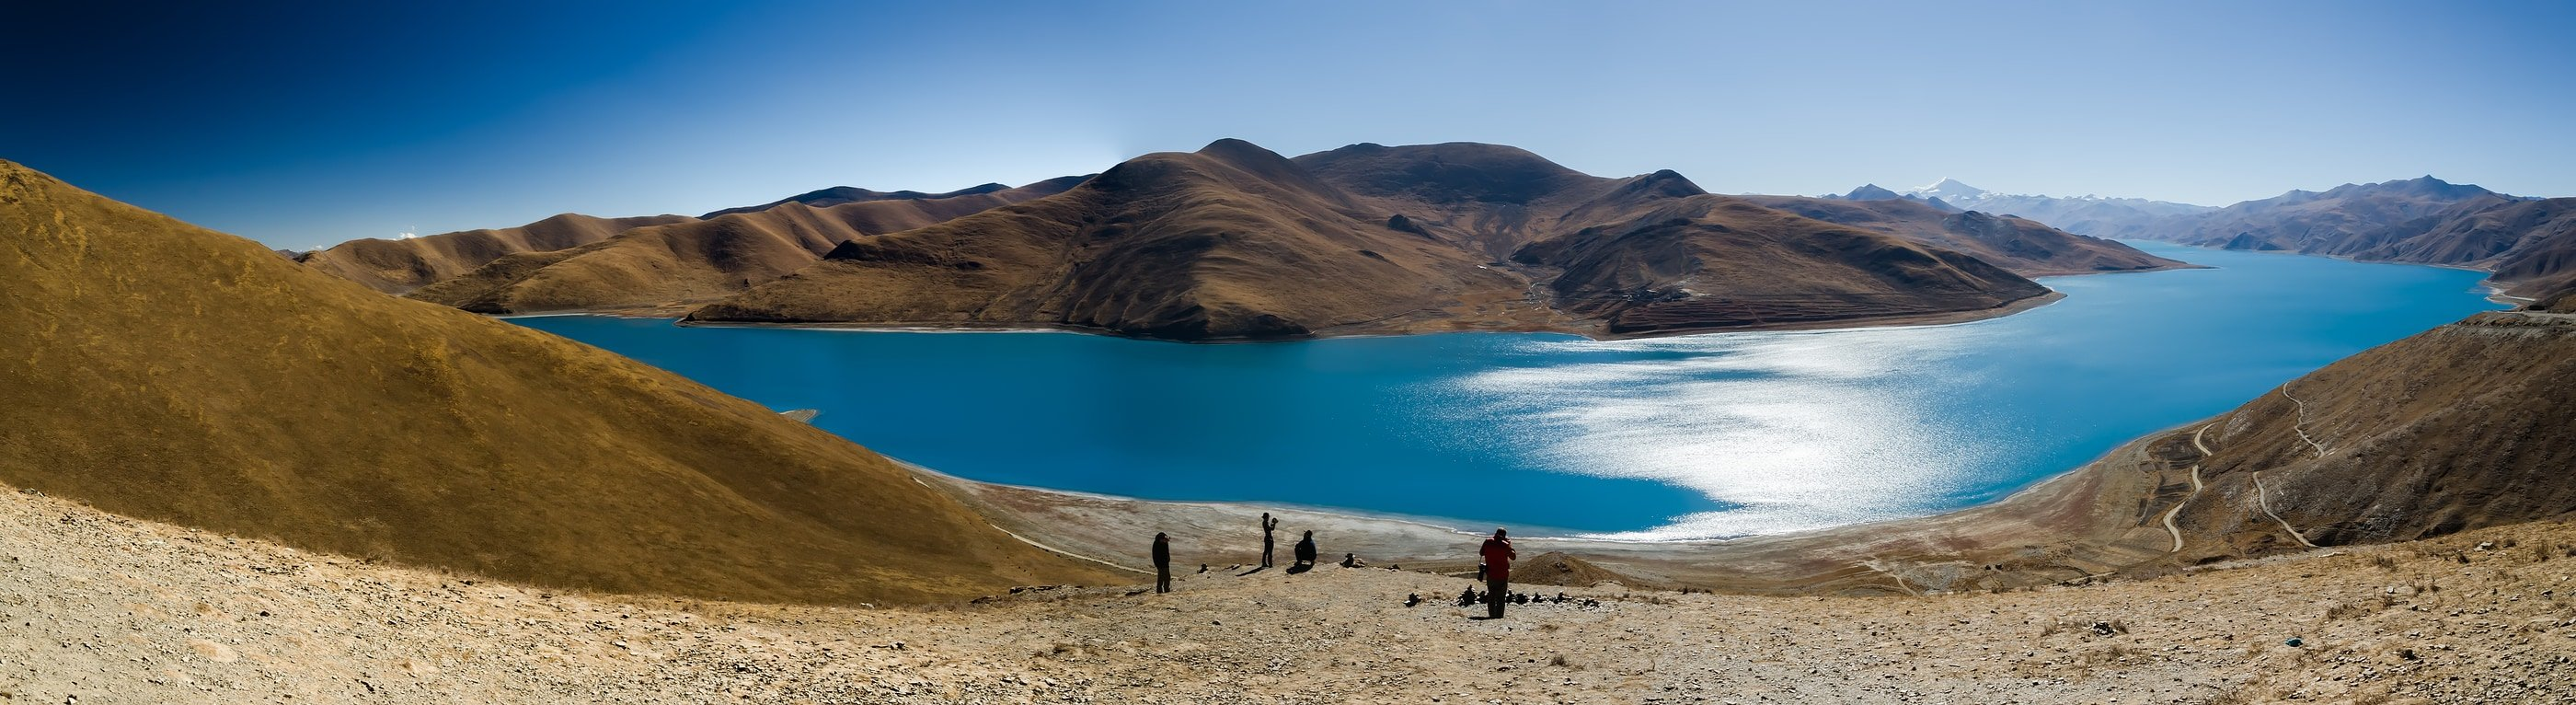 Best Months To Travel To Tibet